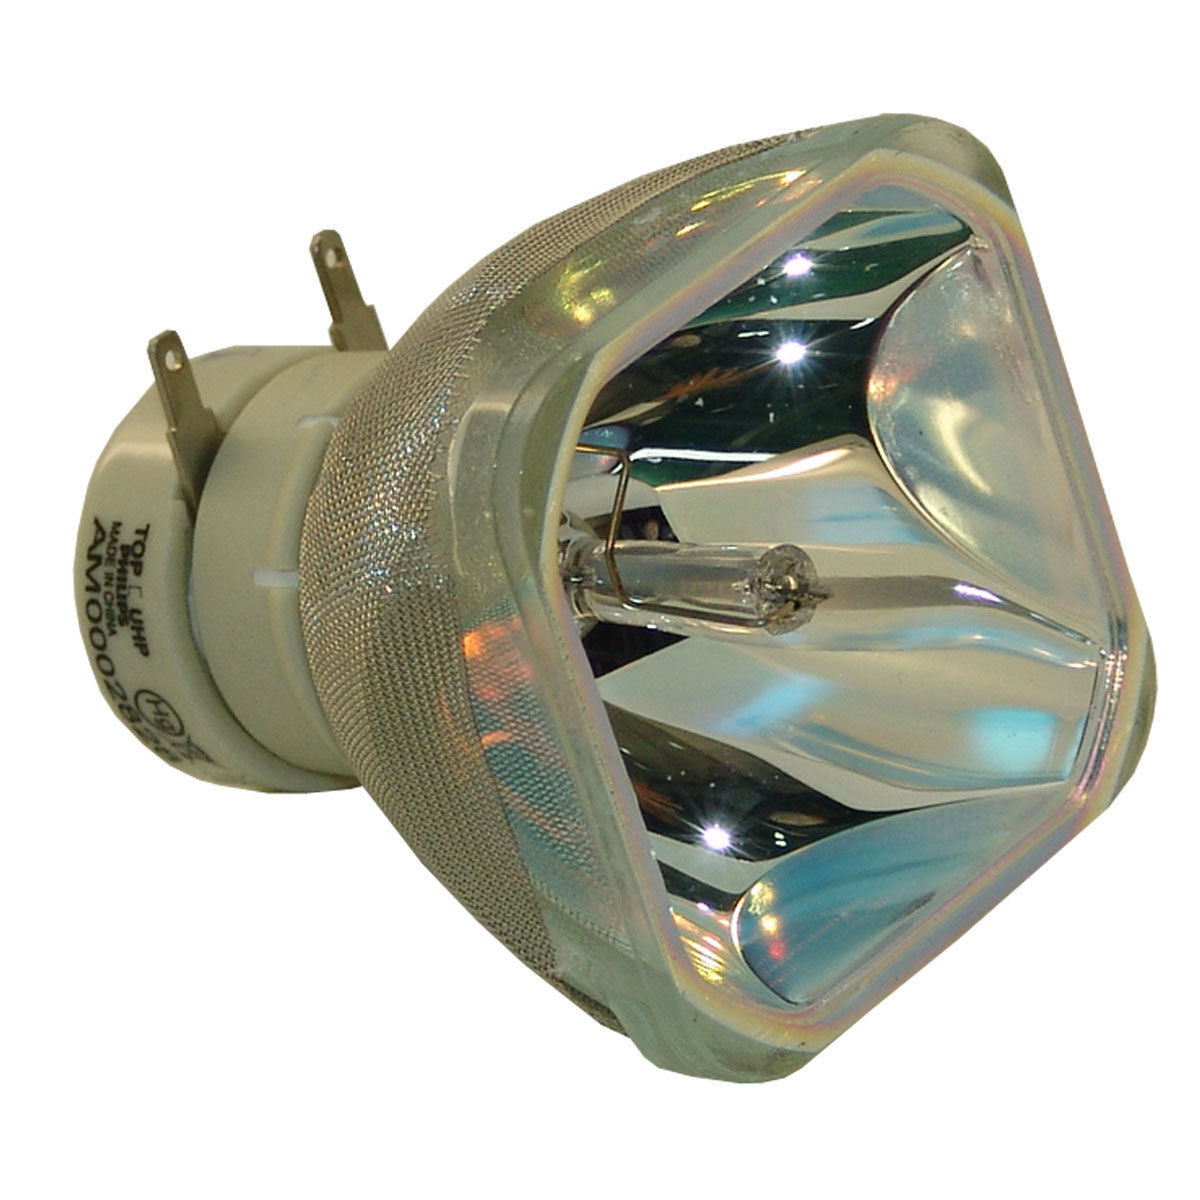 Compatible Bare Bulb DT01022 DT-01022 for HITACHI CP-RX78 CP-RX80W CP-RX80 ED-X24 CP-RX78W Projector Lamp Bulb without housing<br>